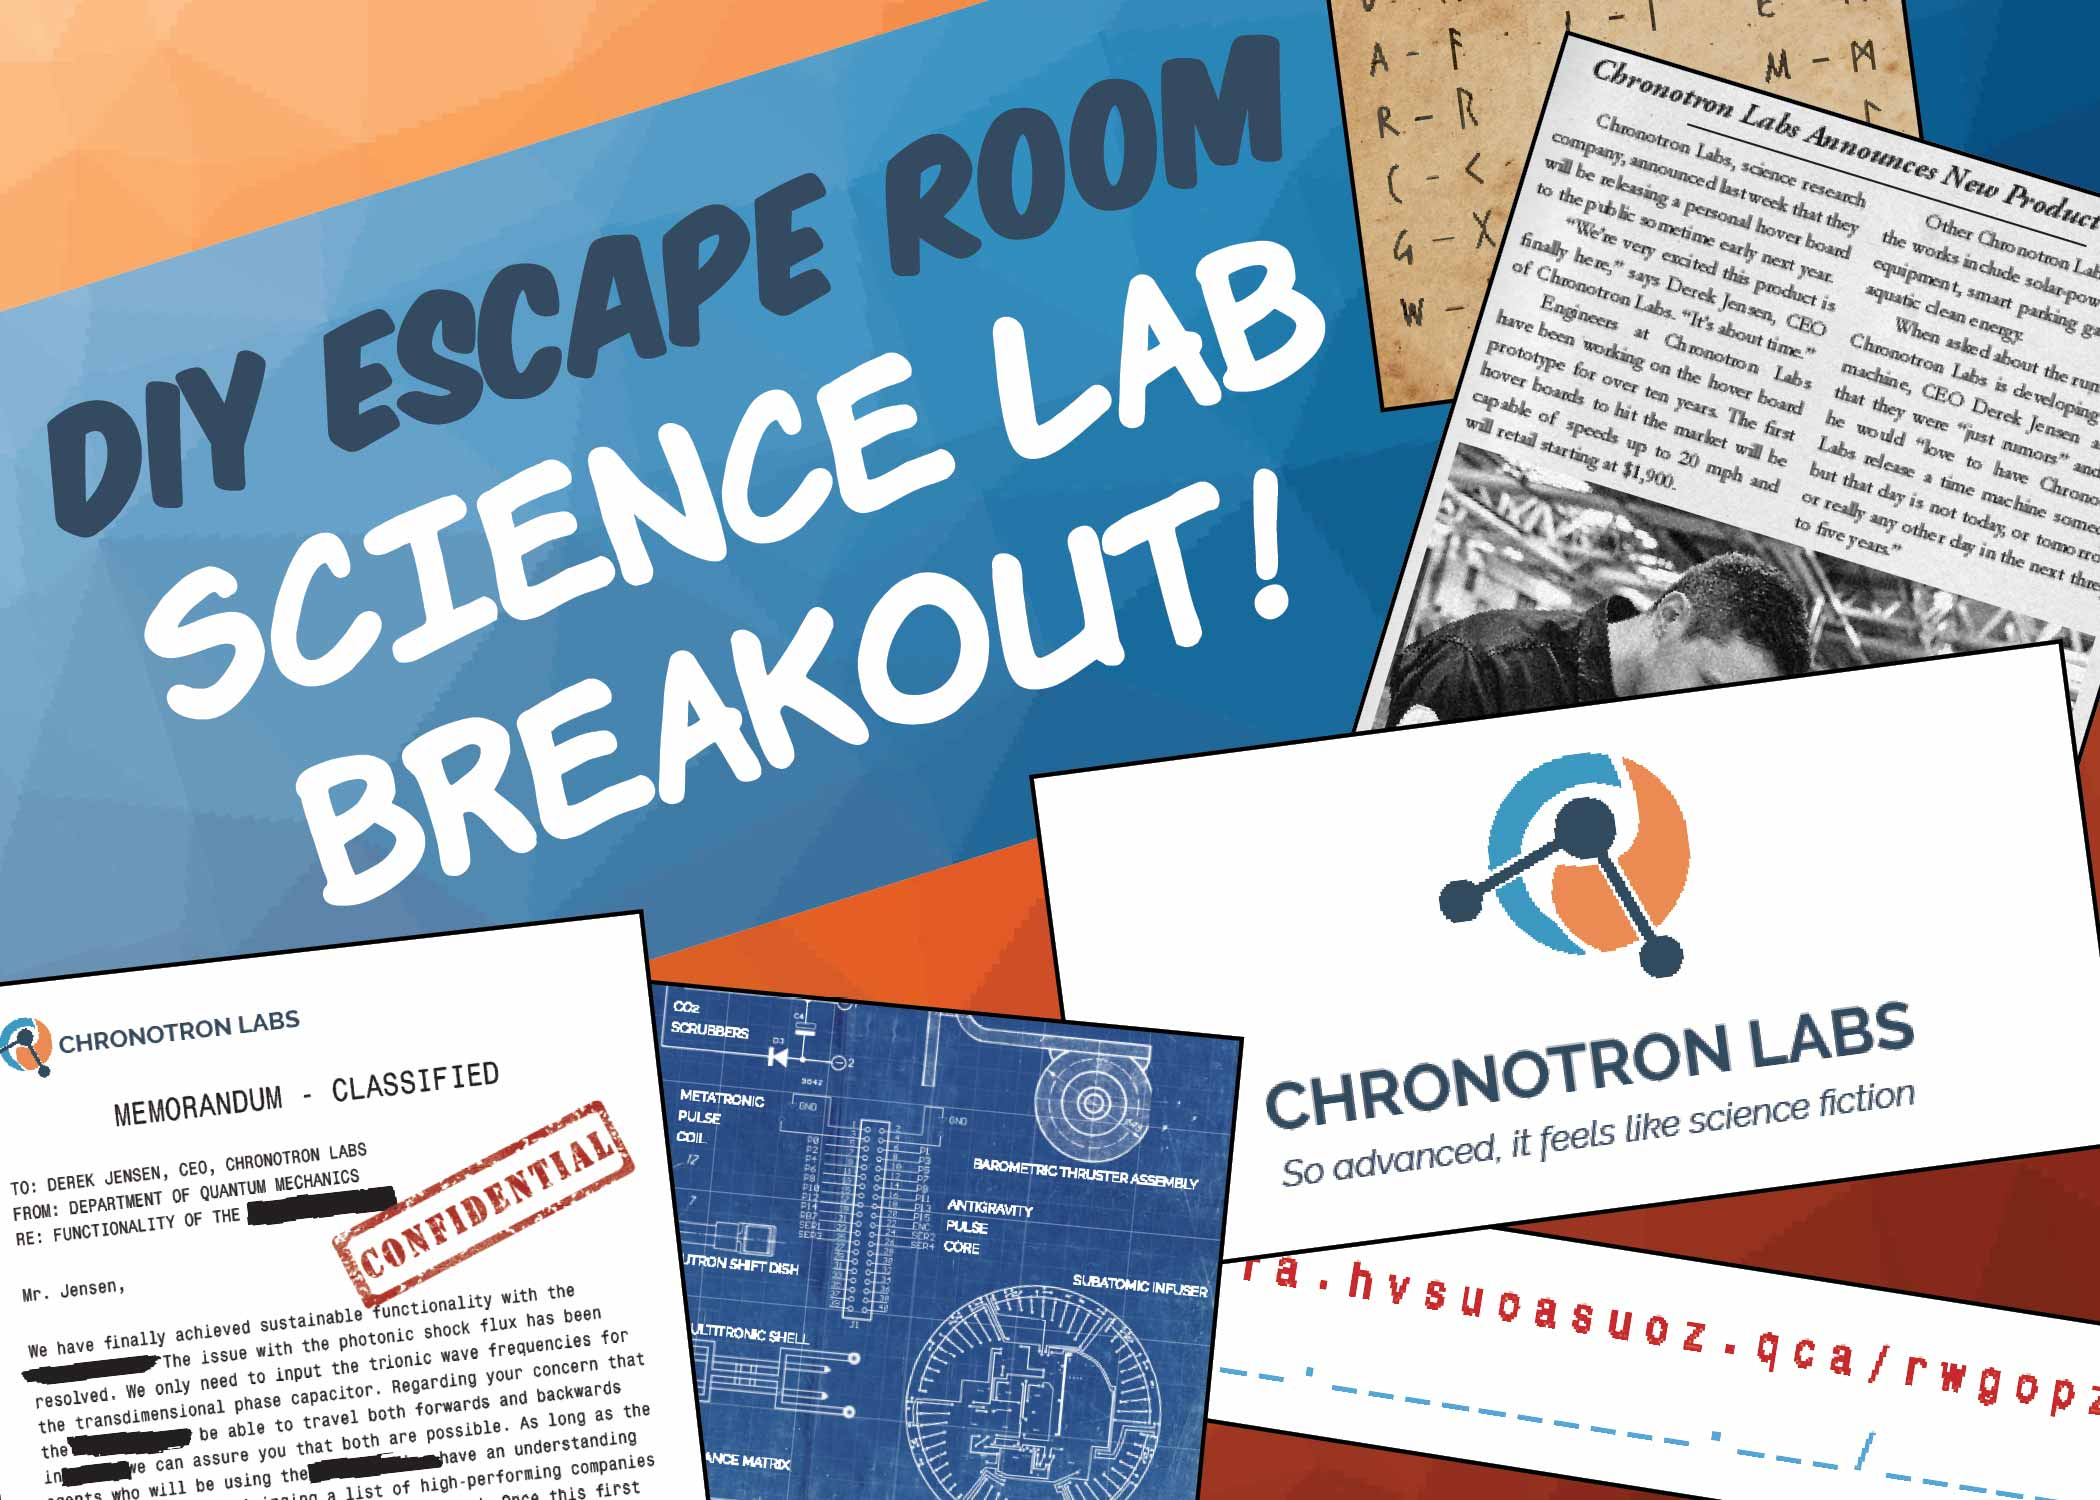 photograph relating to Escape Room Signs Printable named Do-it-yourself Escape Space Package - Science Lab Breakout - The Activity Gal